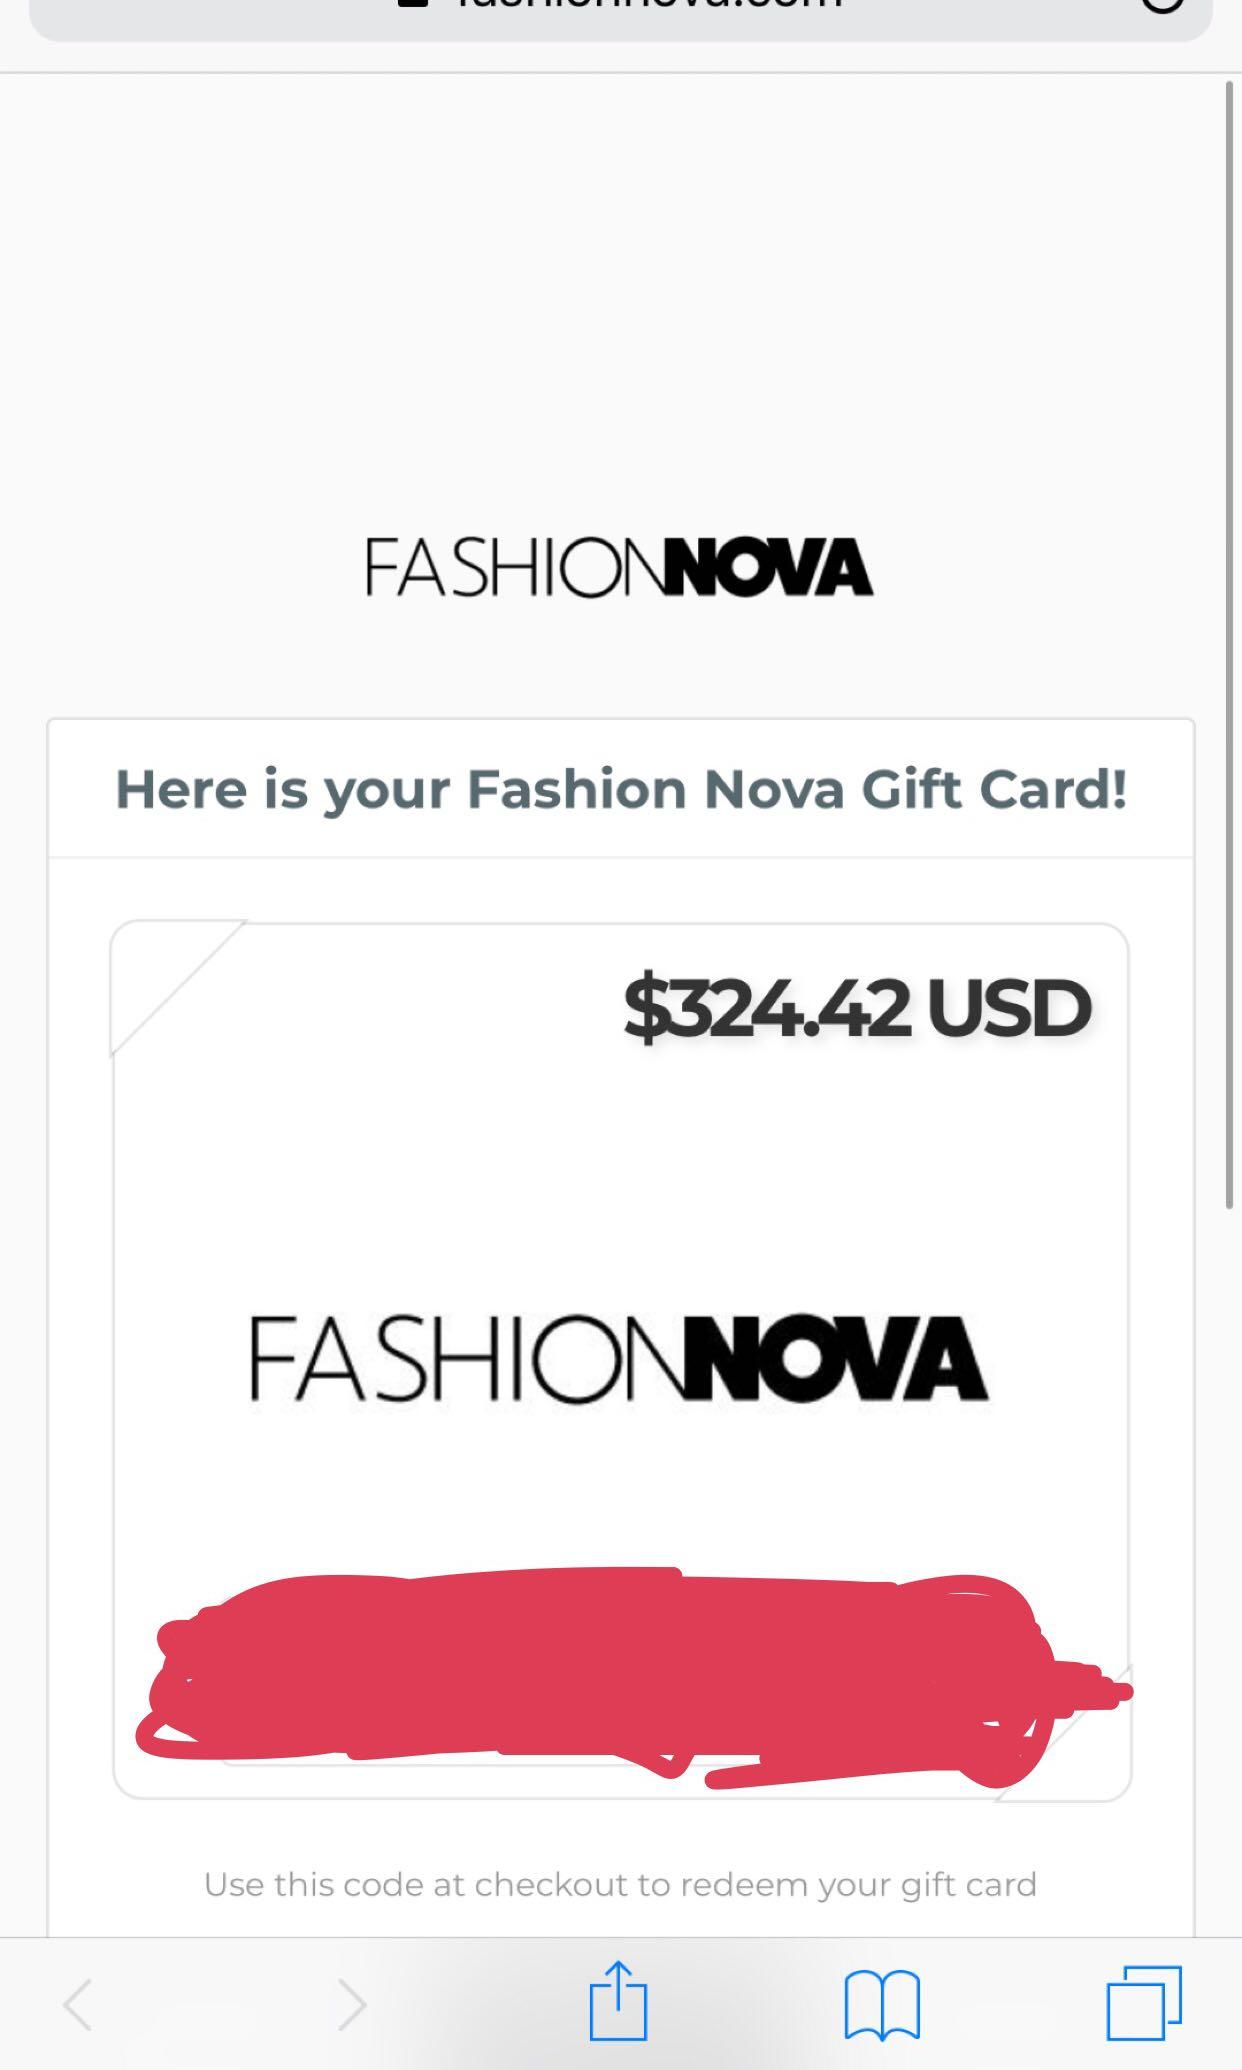 Fashion nova coupon code worth $424 cad or 324 usd